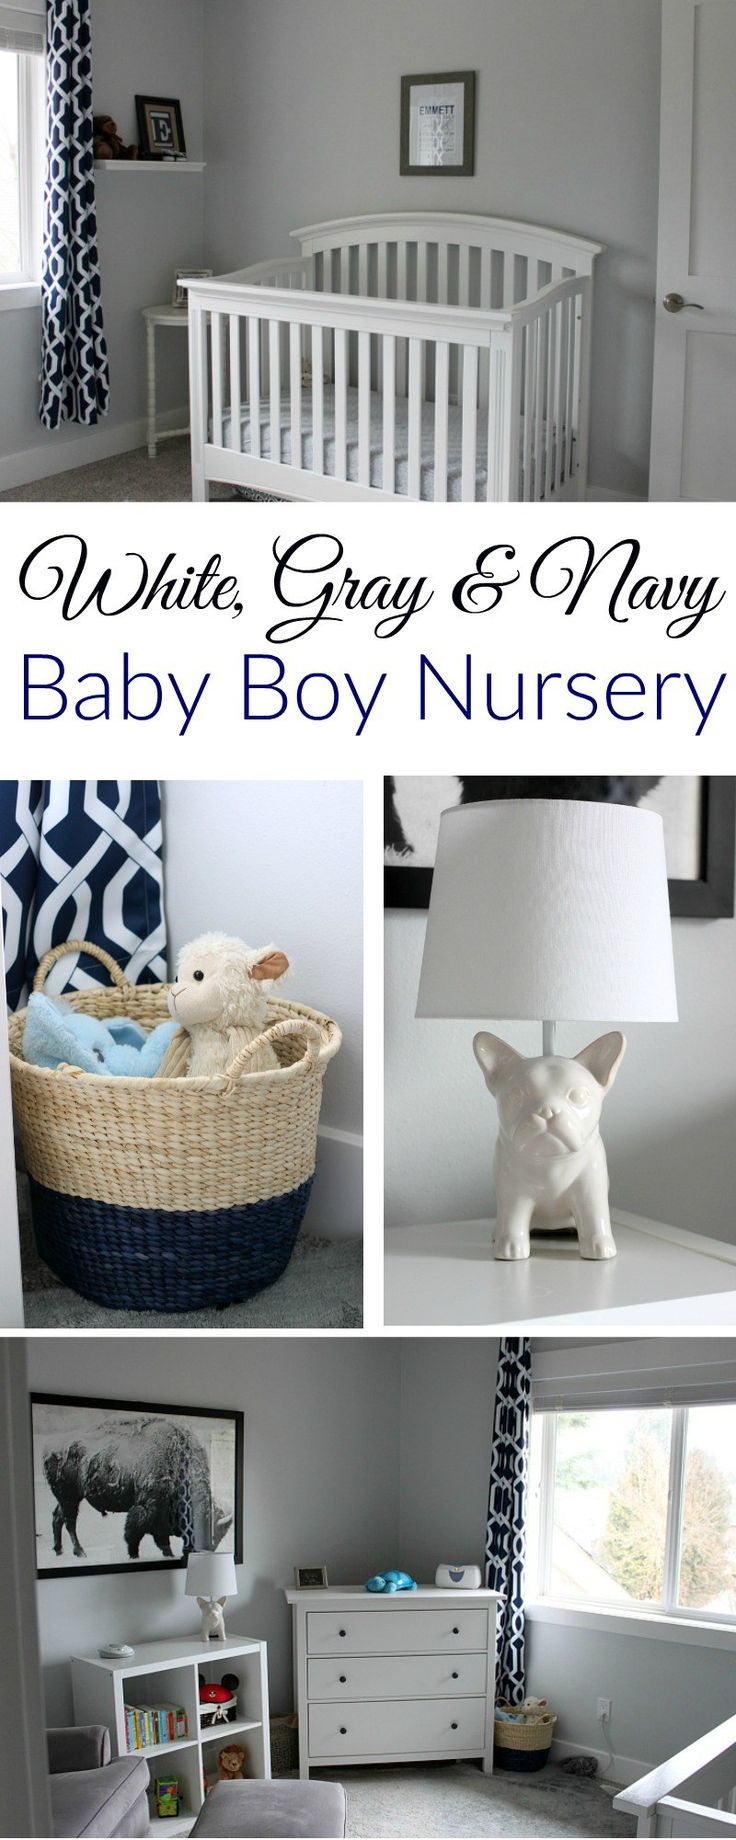 Simple baby boy nursery ideas thenurseries for Baby boy picture ideas